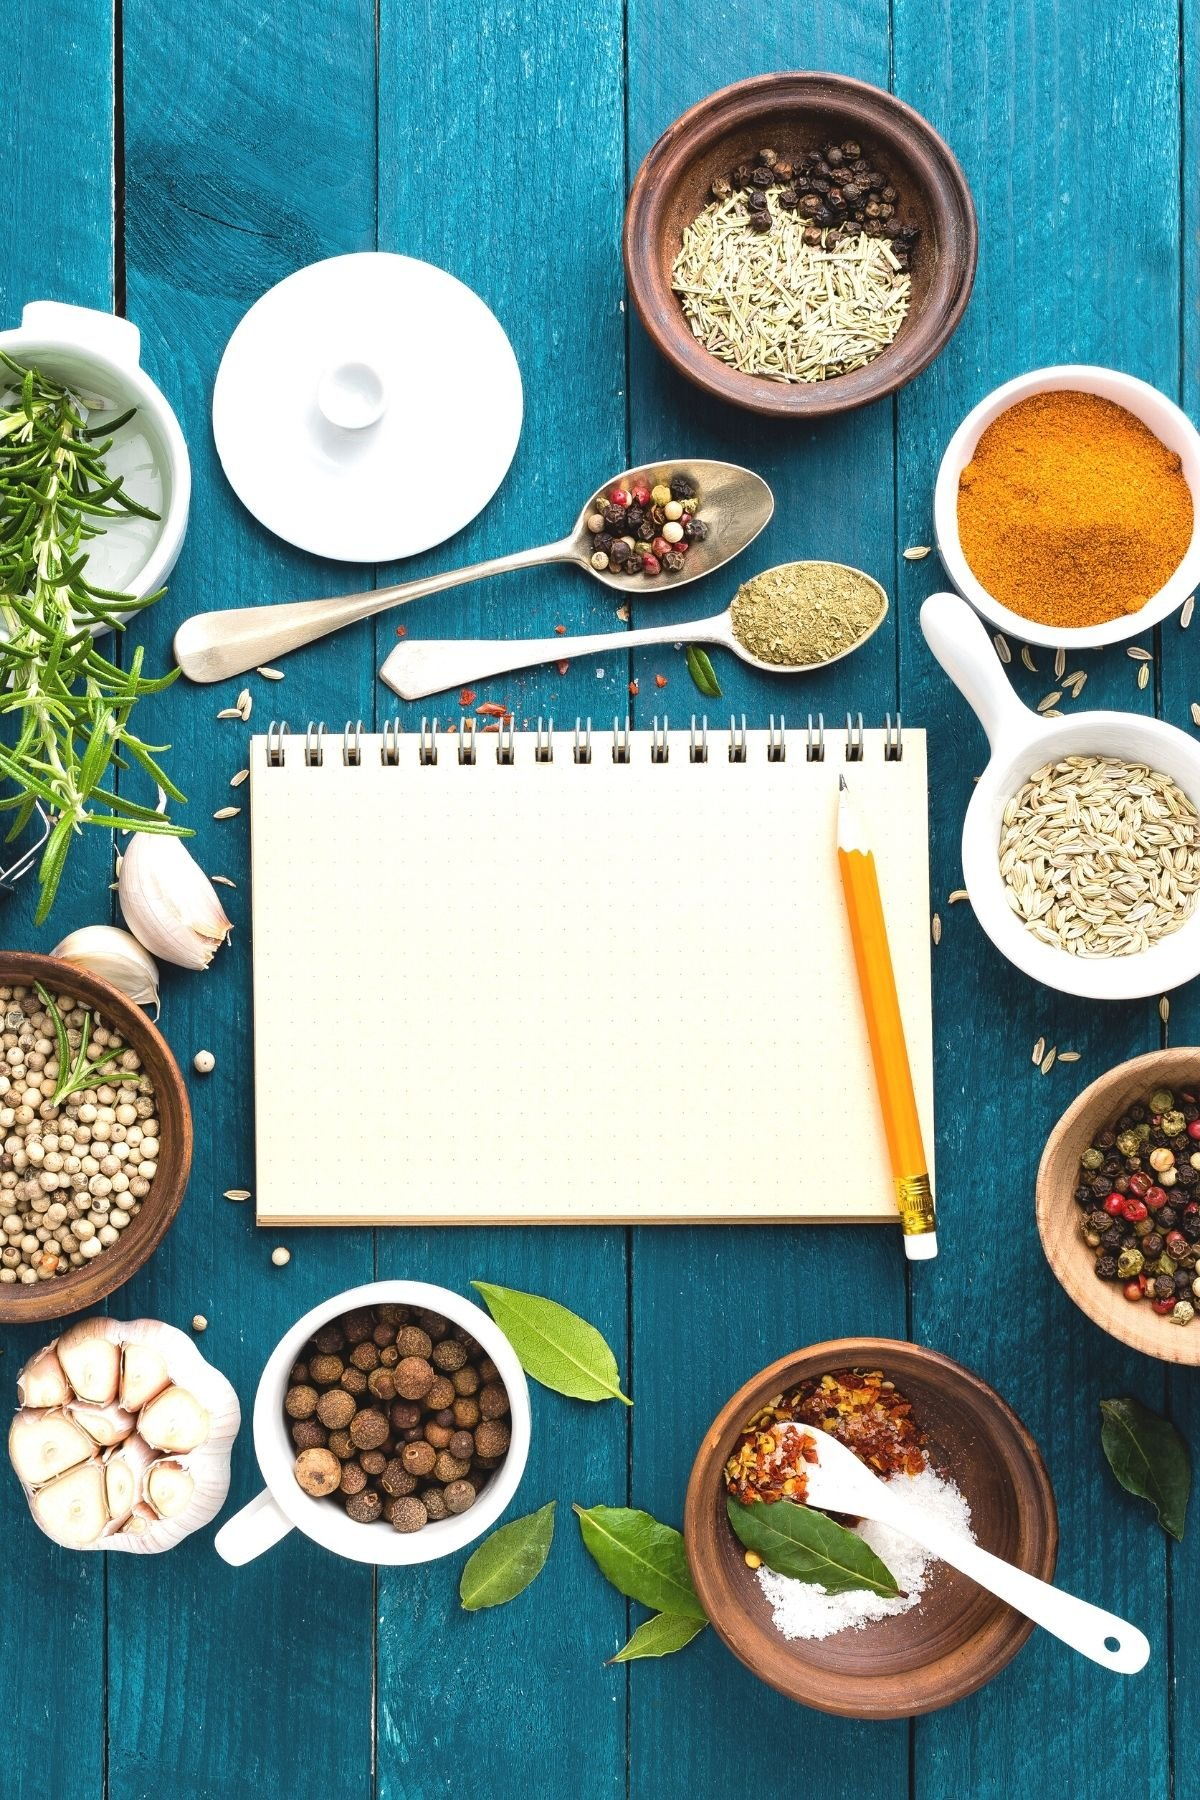 blank journal on a table surrounded by spices